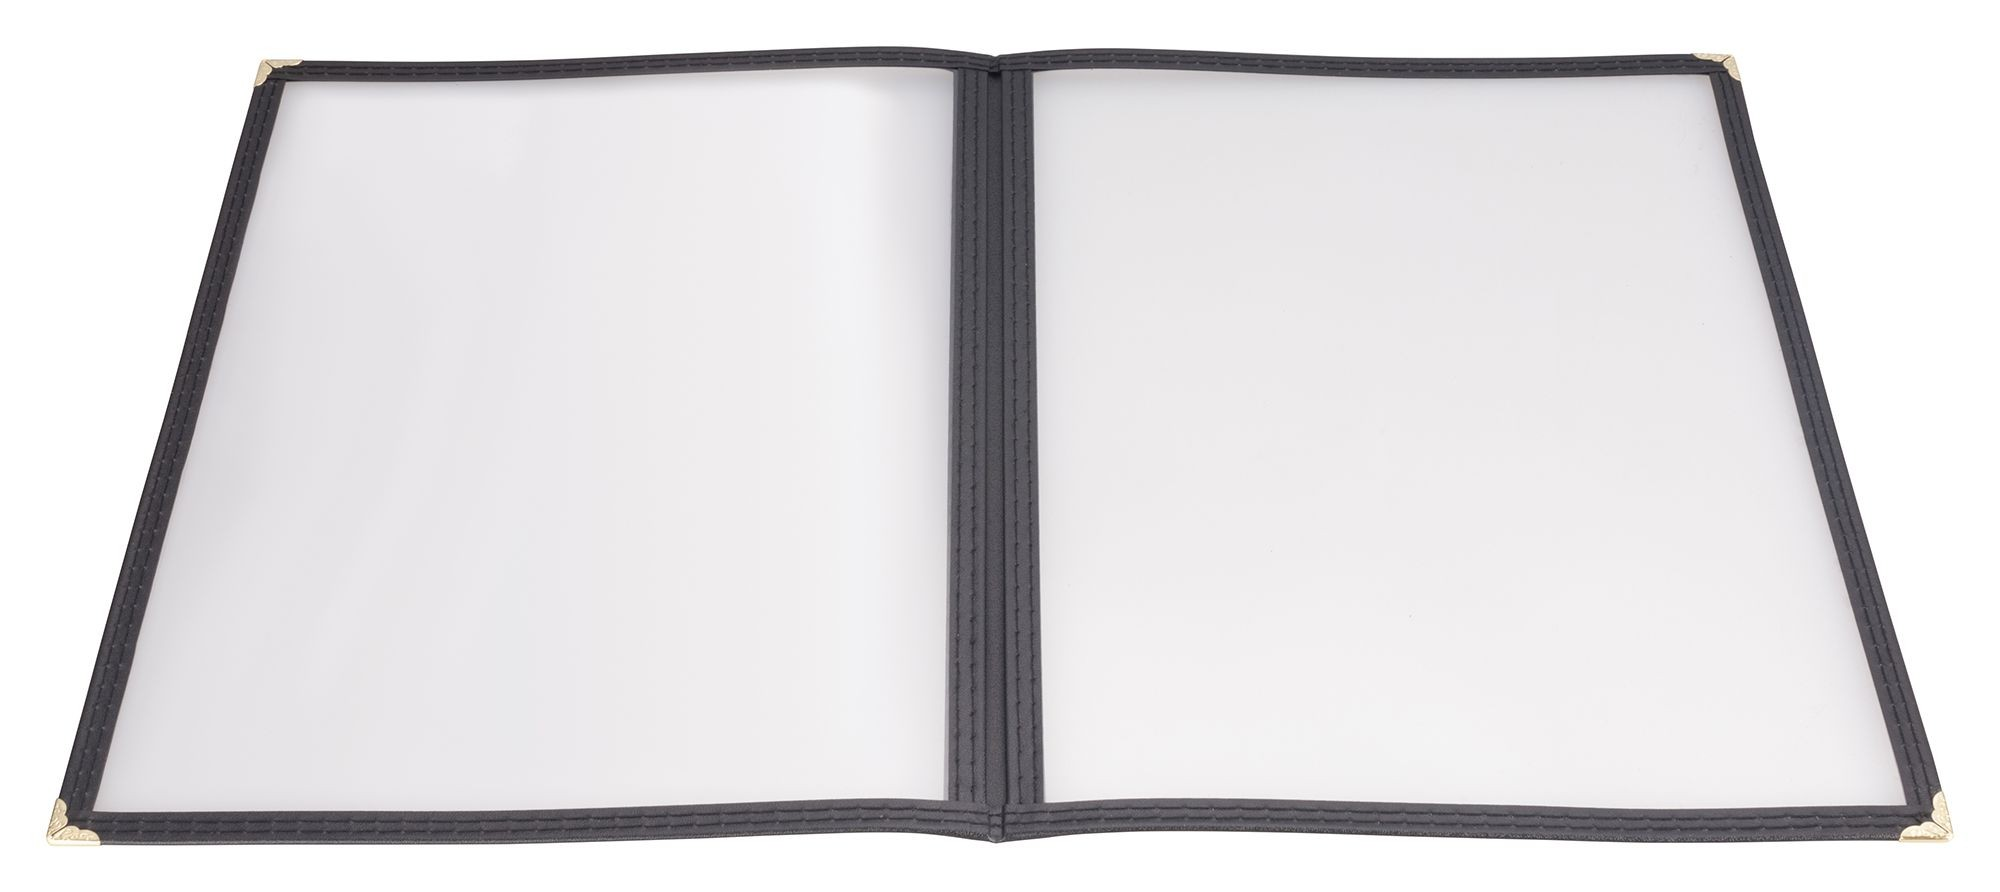 "Winco PMCD-9K Black Double Fold Menu Cover 9-1/2"" x 12"""